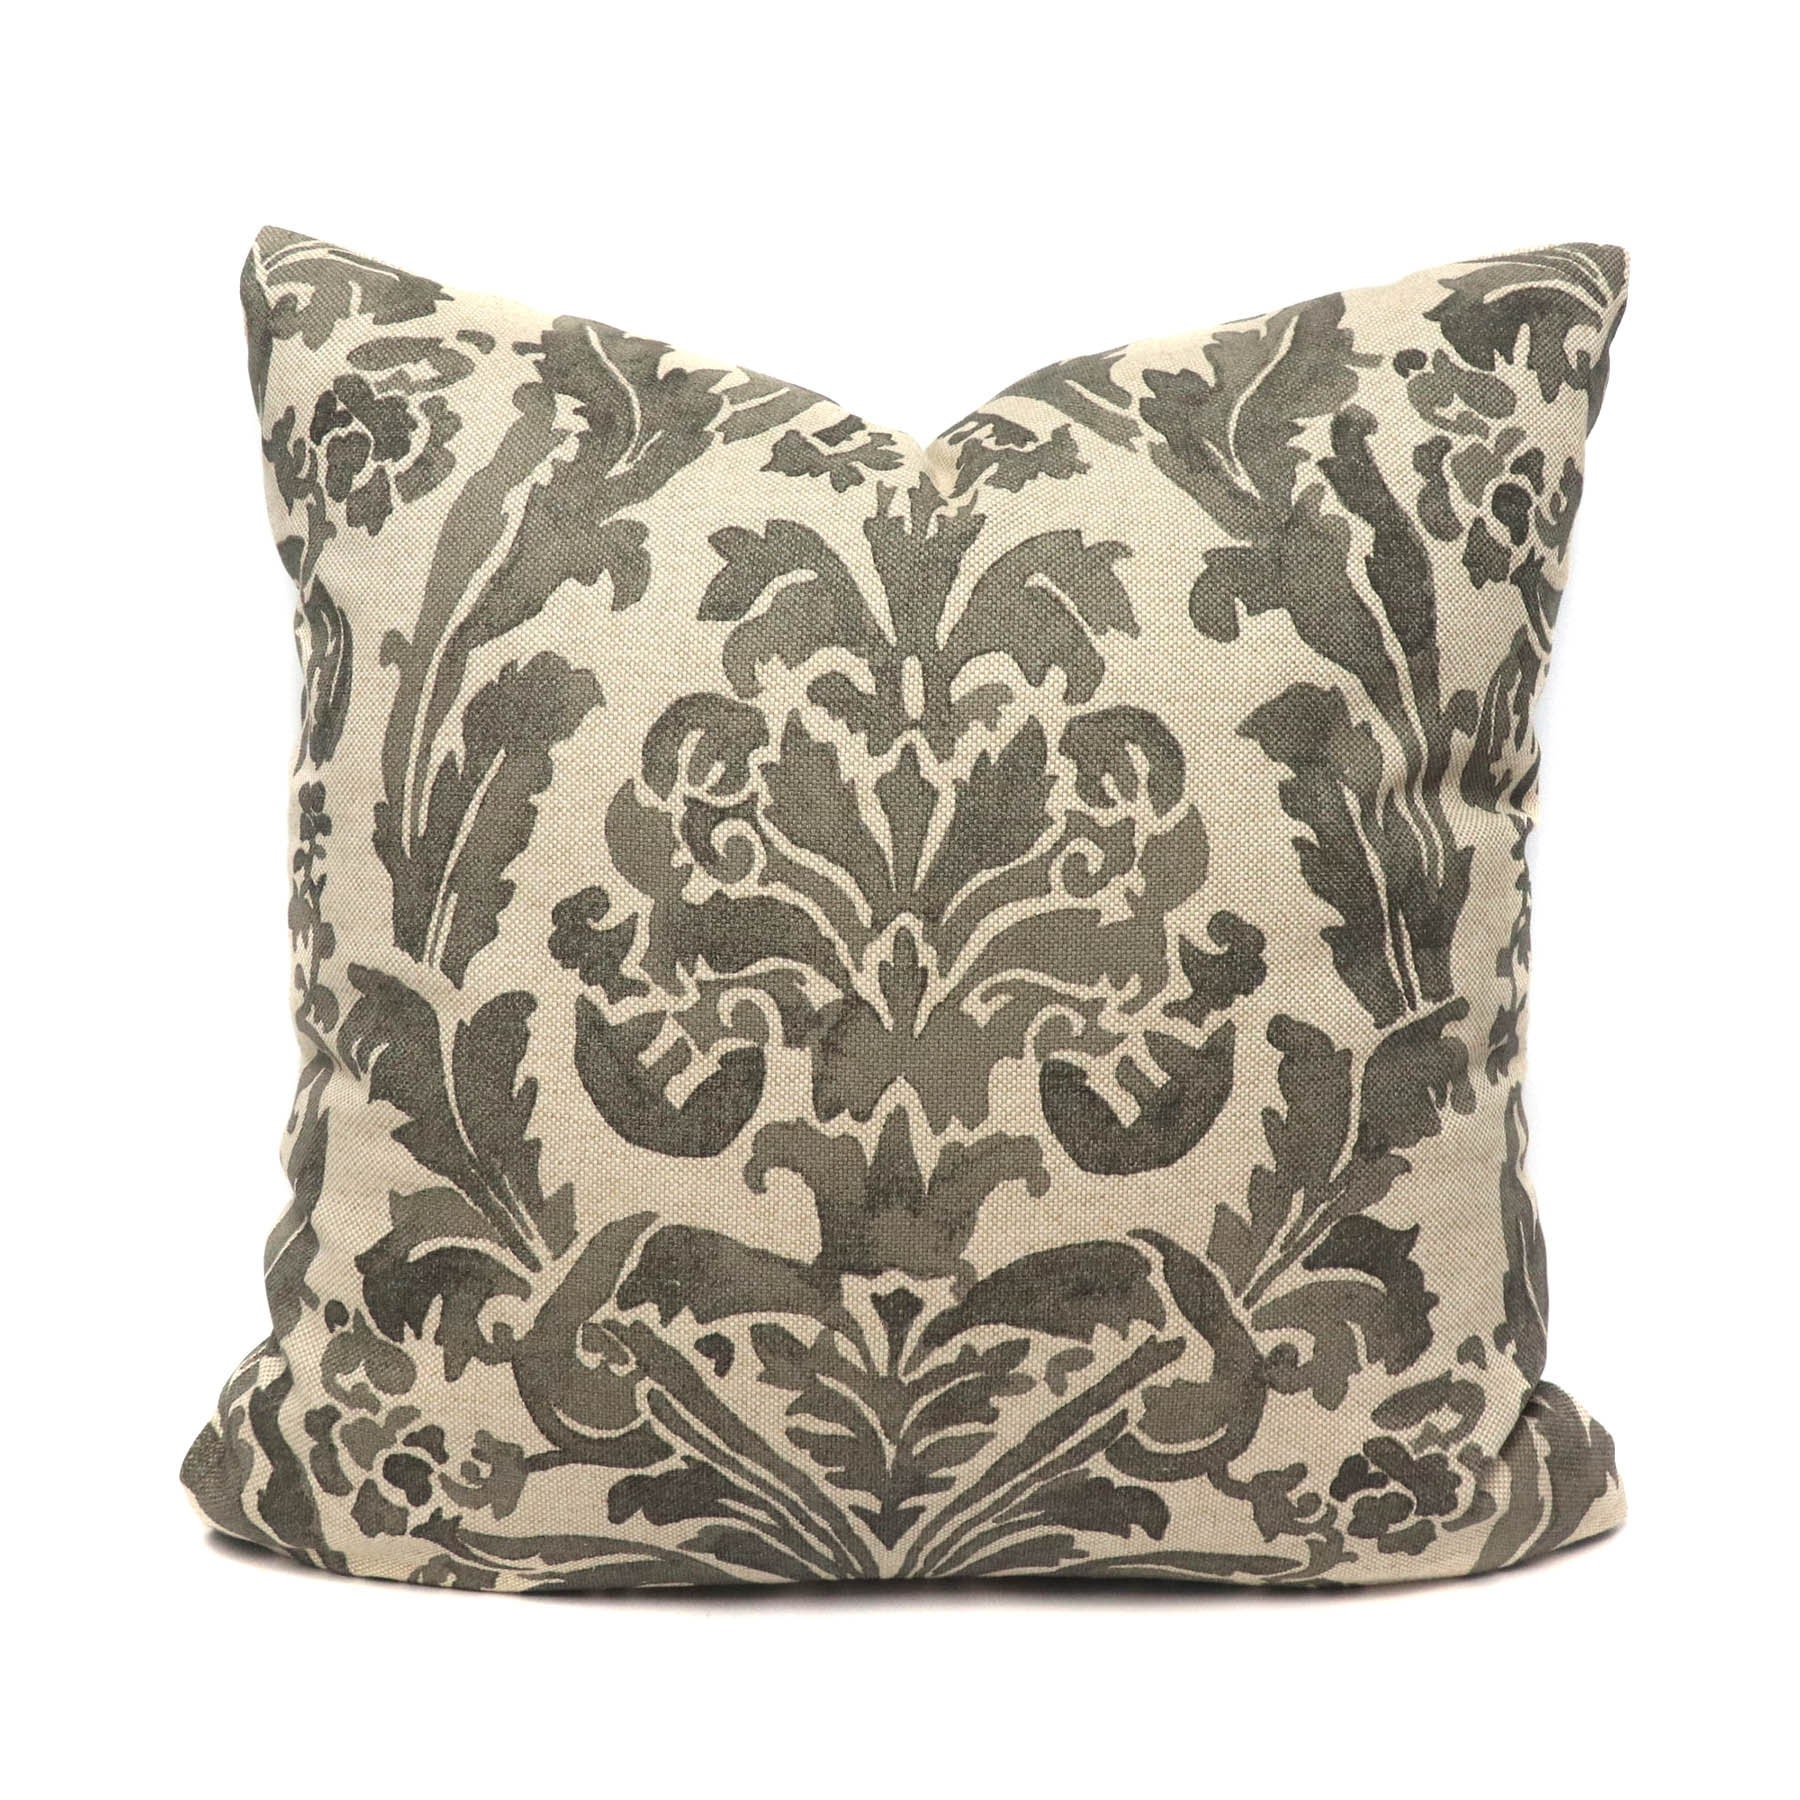 Gable damask pillow cover in stone